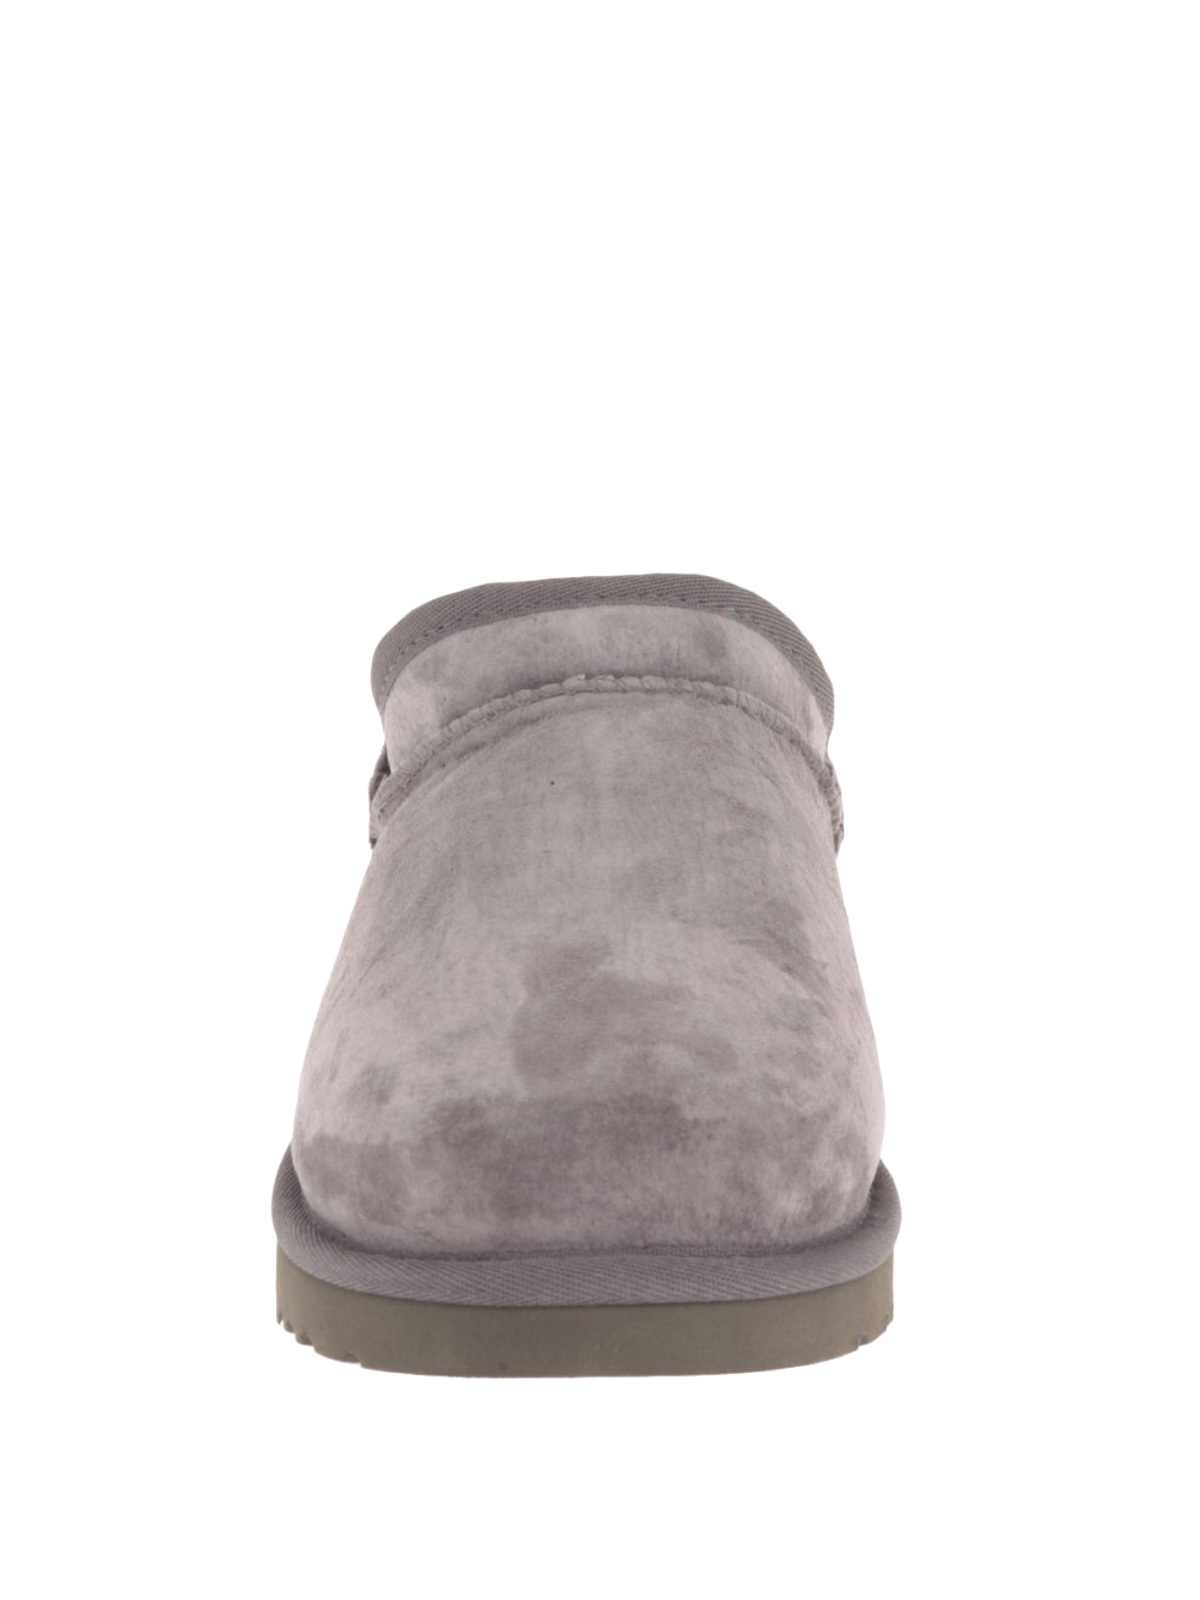 92fe80db32d Classic Slipper shop online  UGG · UGG  Loafers   Slippers ...